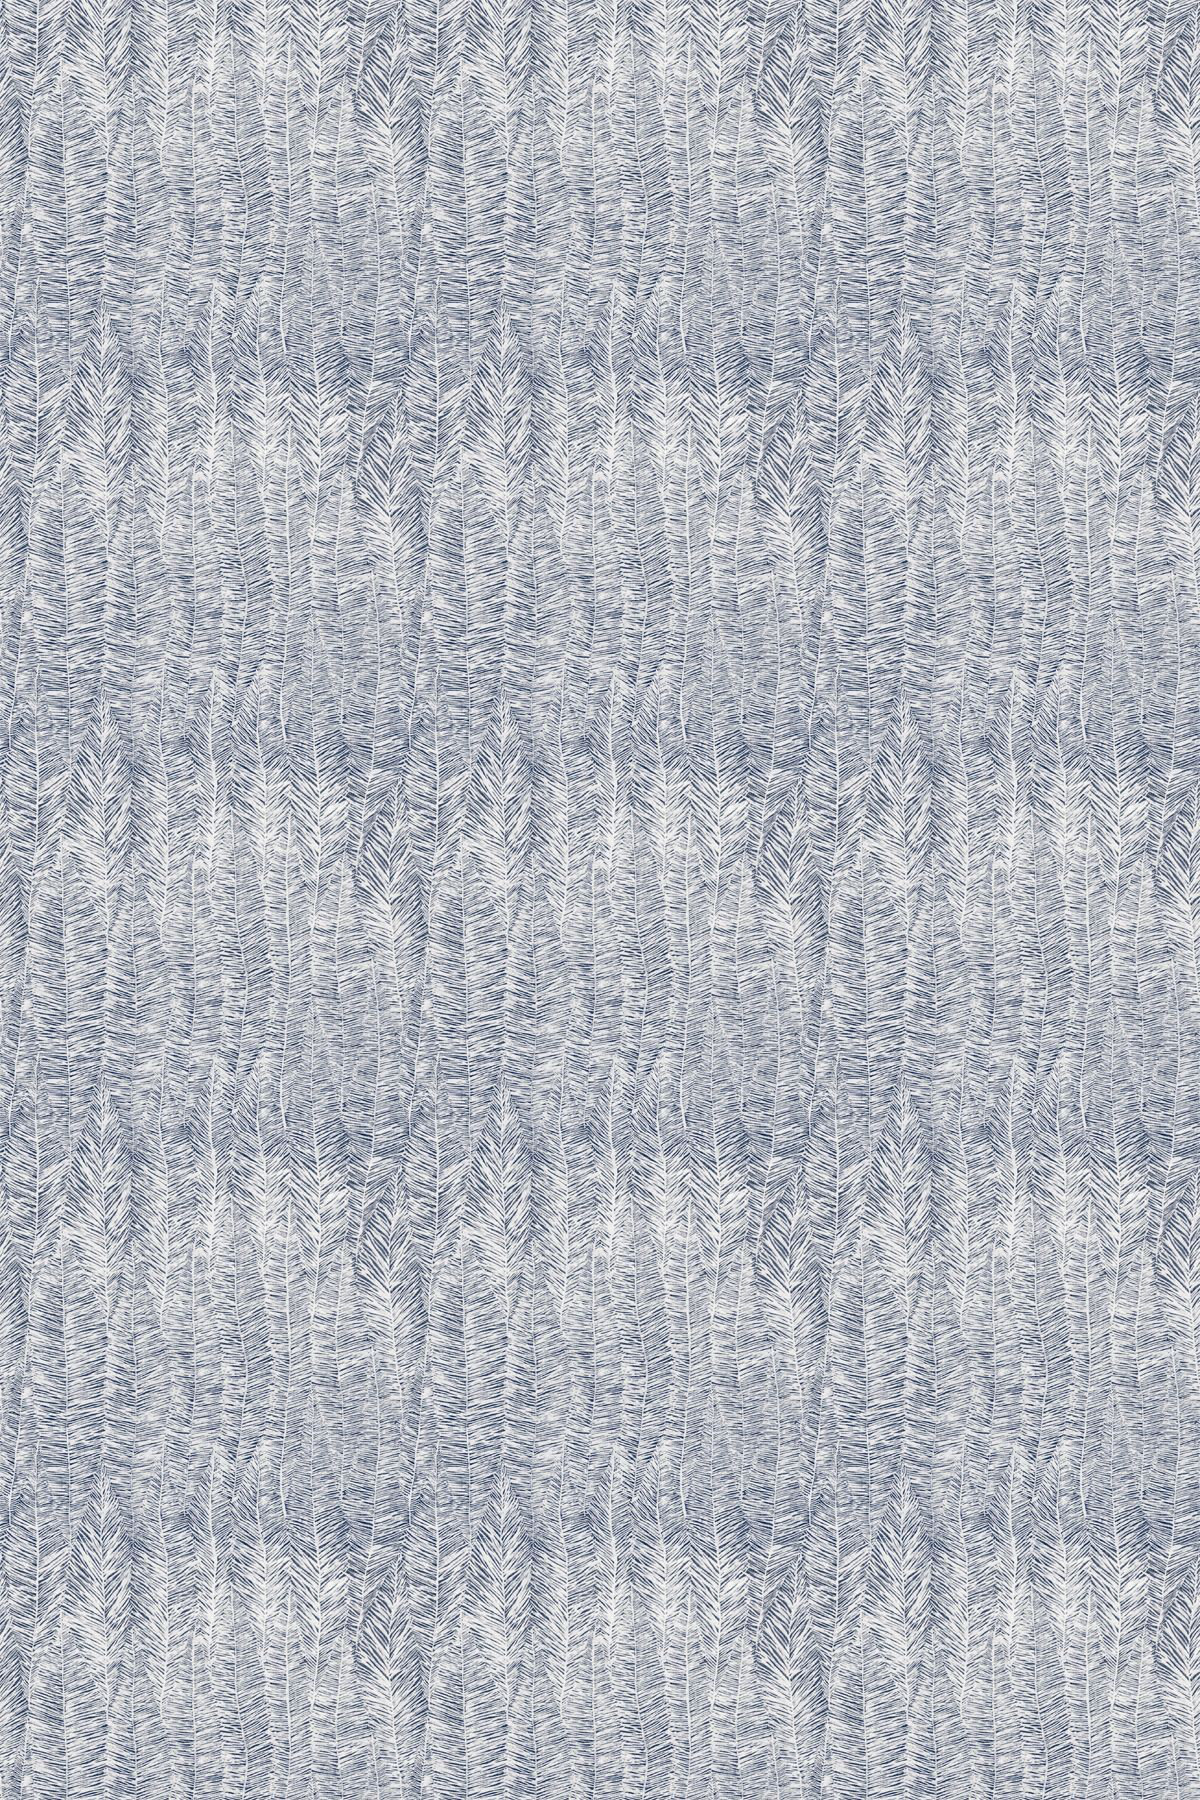 Image of Blendworth Fabric Quill, Quill/005